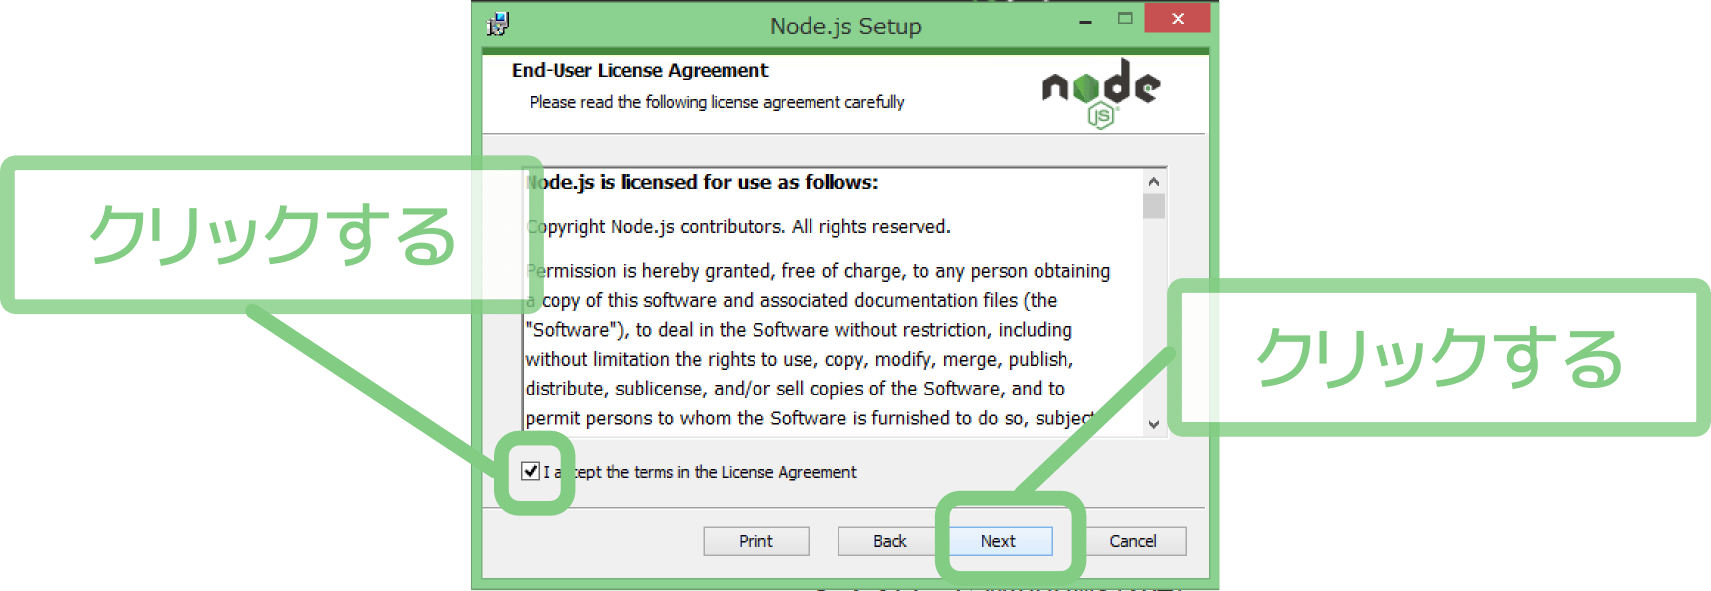 install-node-is-for-windows_003